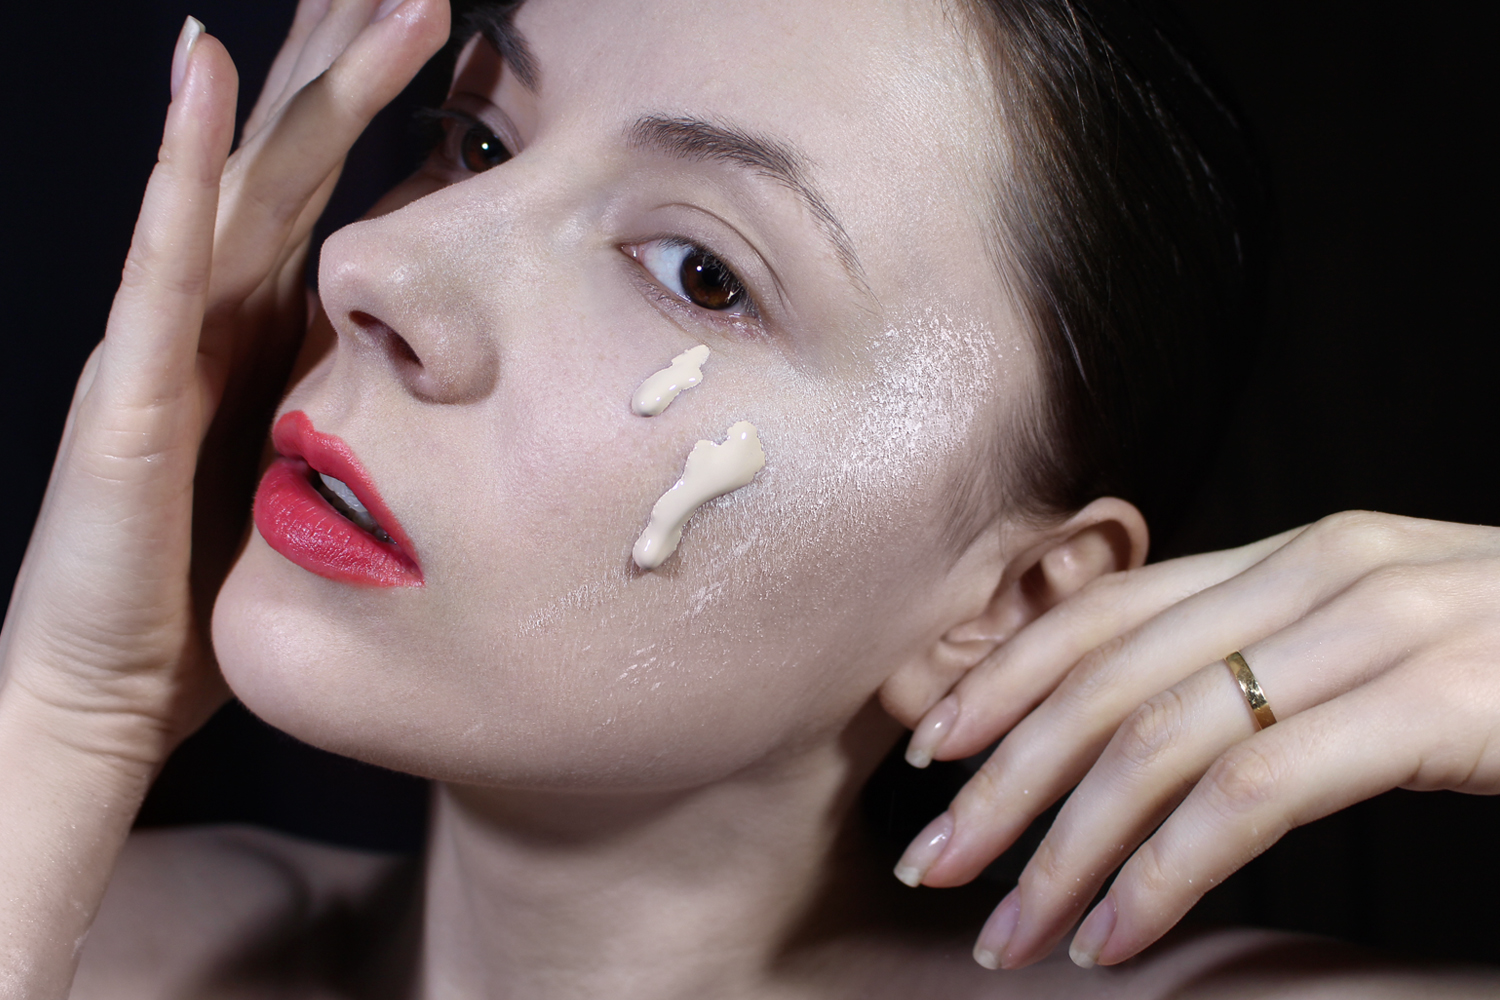 a close-up portrait of a woman with a makeup powder on her face